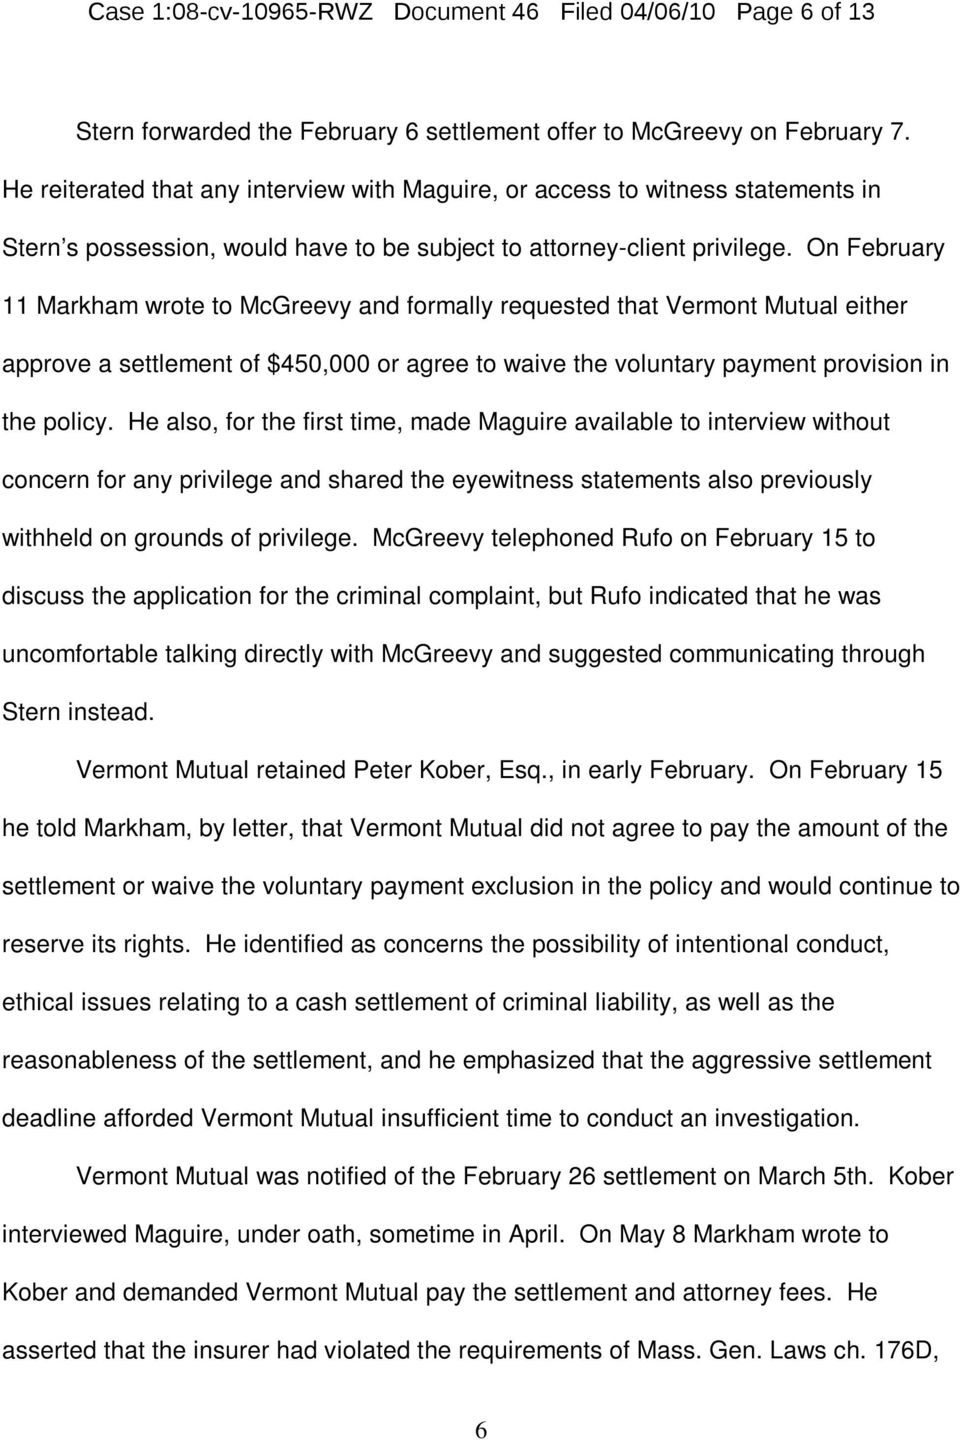 On February 11 Markham wrote to McGreevy and formally requested that Vermont Mutual either approve a settlement of $450,000 or agree to waive the voluntary payment provision in the policy.